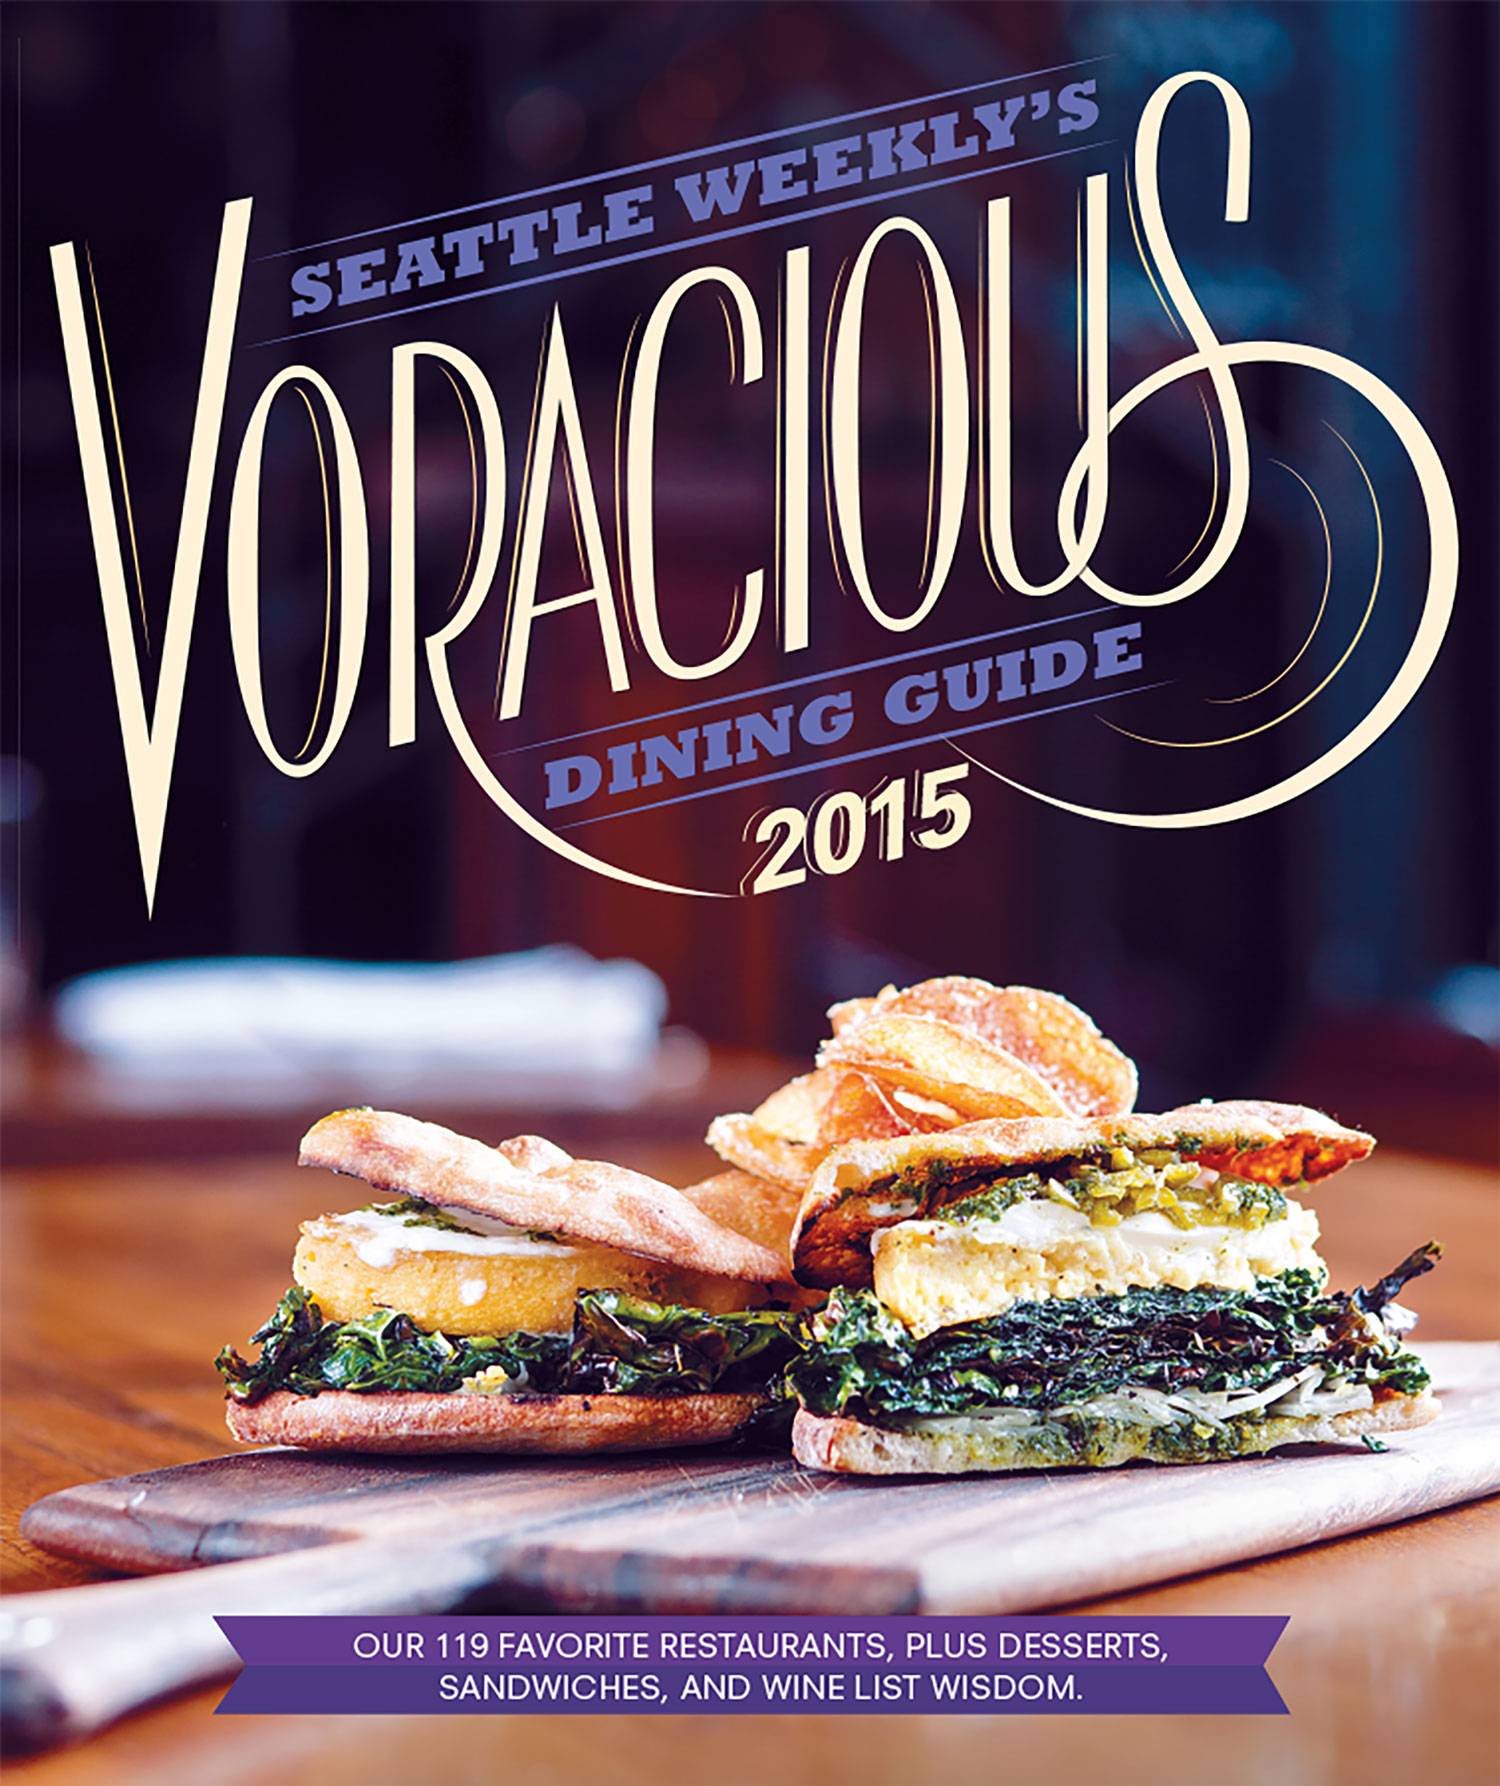 Voracious Dining Event 2015 - Annual special event requiring ads—digital and print—social media and event collateral.